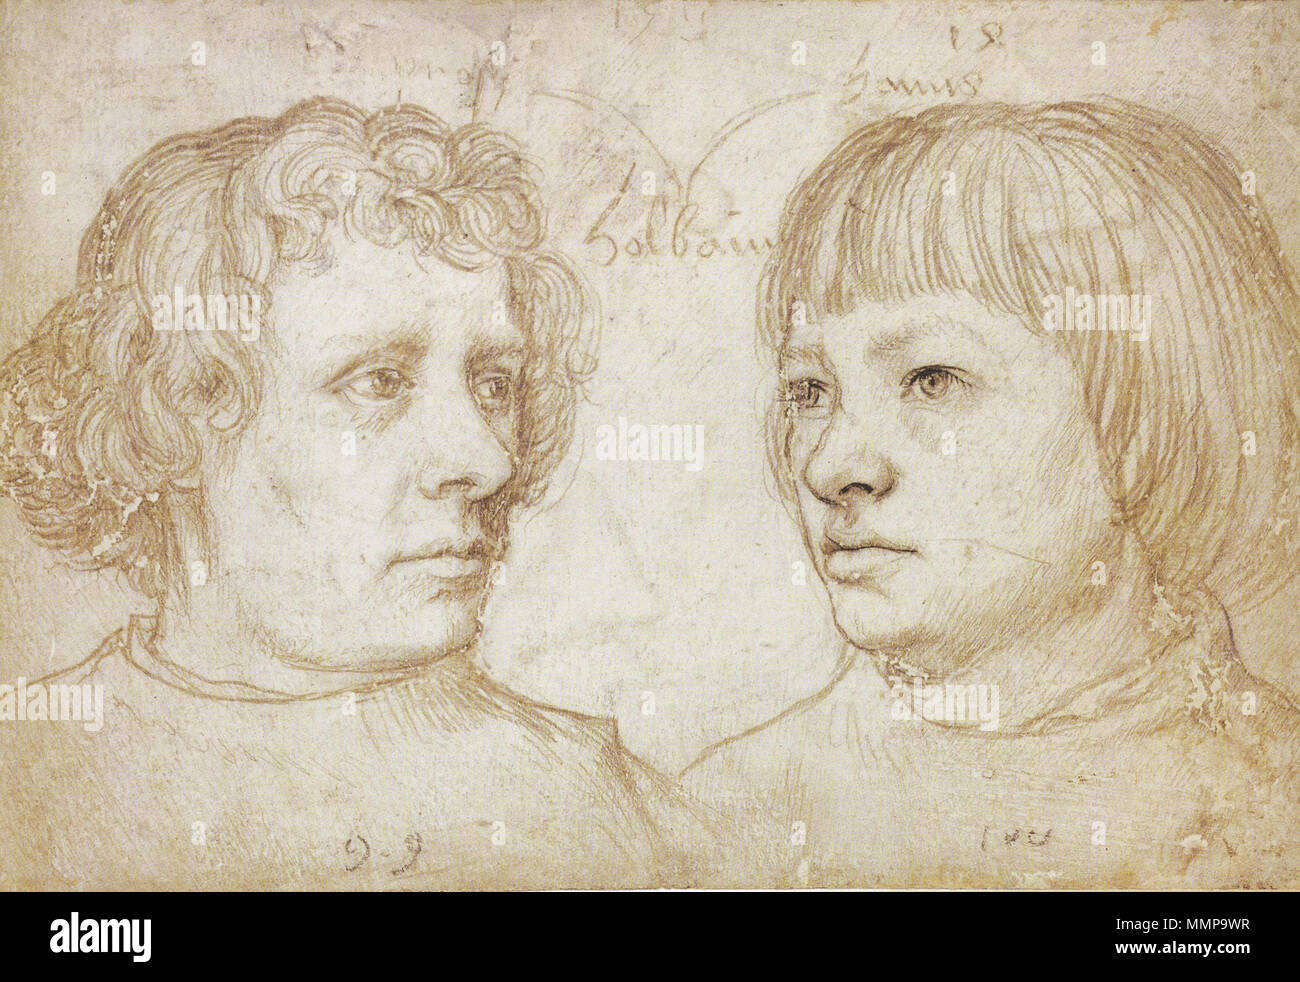 . English: Ambrosius and Hans Holbein. Silverpoint on white-coated paper, 10.3 × 15.5 cm, Berlin State Museums. The names 'Prosy' (left) and 'Hans' (right) are written over the heads of the boys. According to art historian Stephanie Buck: 'The hand-written notes make this silverpoint drawing one of the most personal documents of an artist's family of the early modern era. The sheet probably comes from a sketchbook in which various portraits were kept.' (Buck, p. 8.)  . 1511. Hans Holbein the Elder. Uploaded by qp10qp. Ambrosius and Hans Holbein, by Hans Holbein the Elder - Stock Image